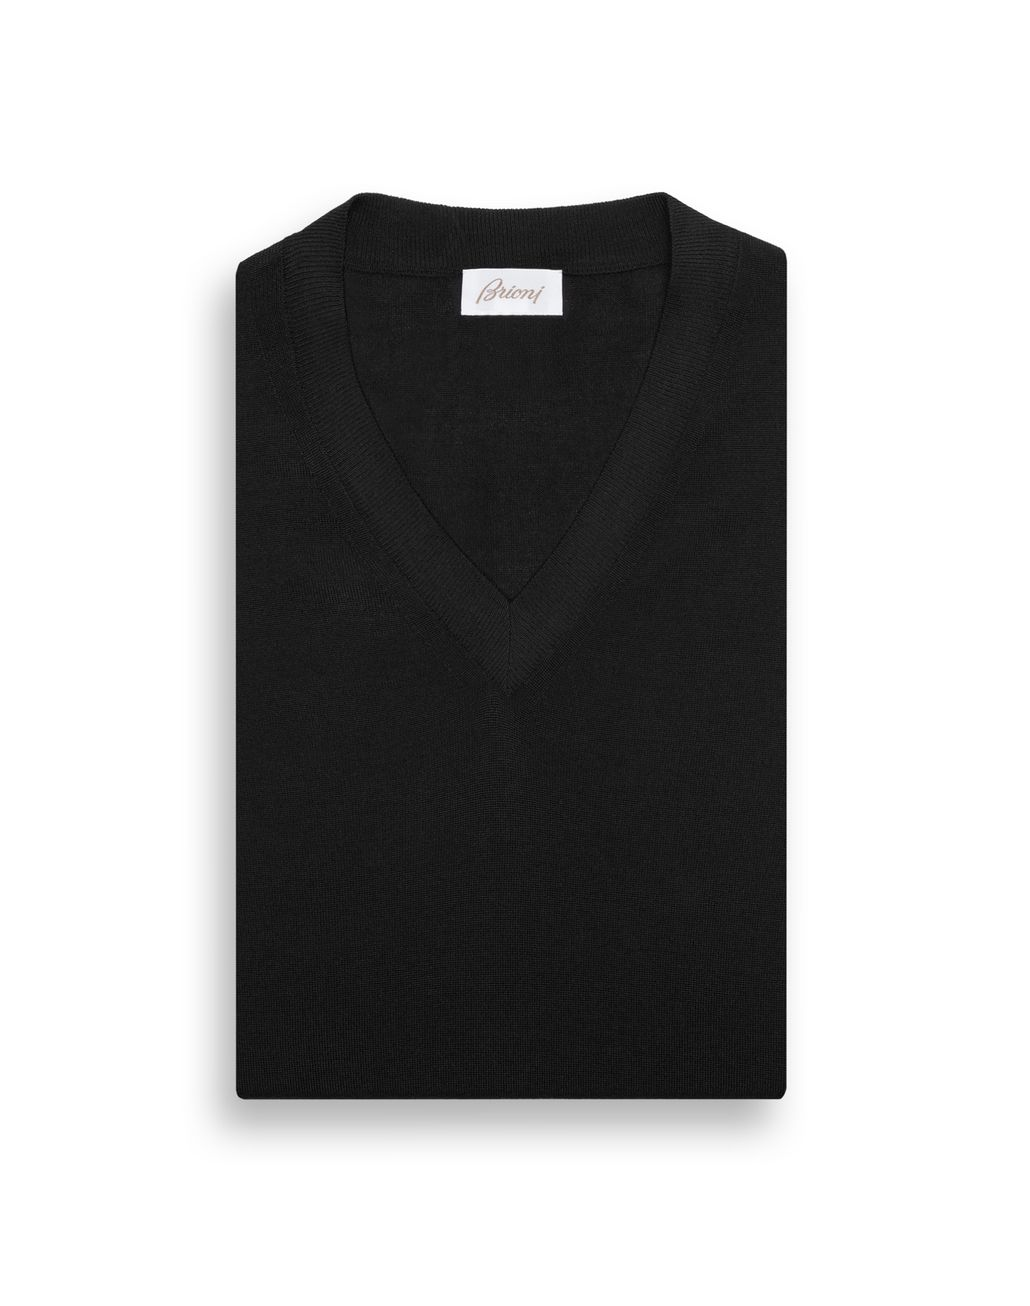 BRIONI Black V-Neck Sweater Knitwear Man e